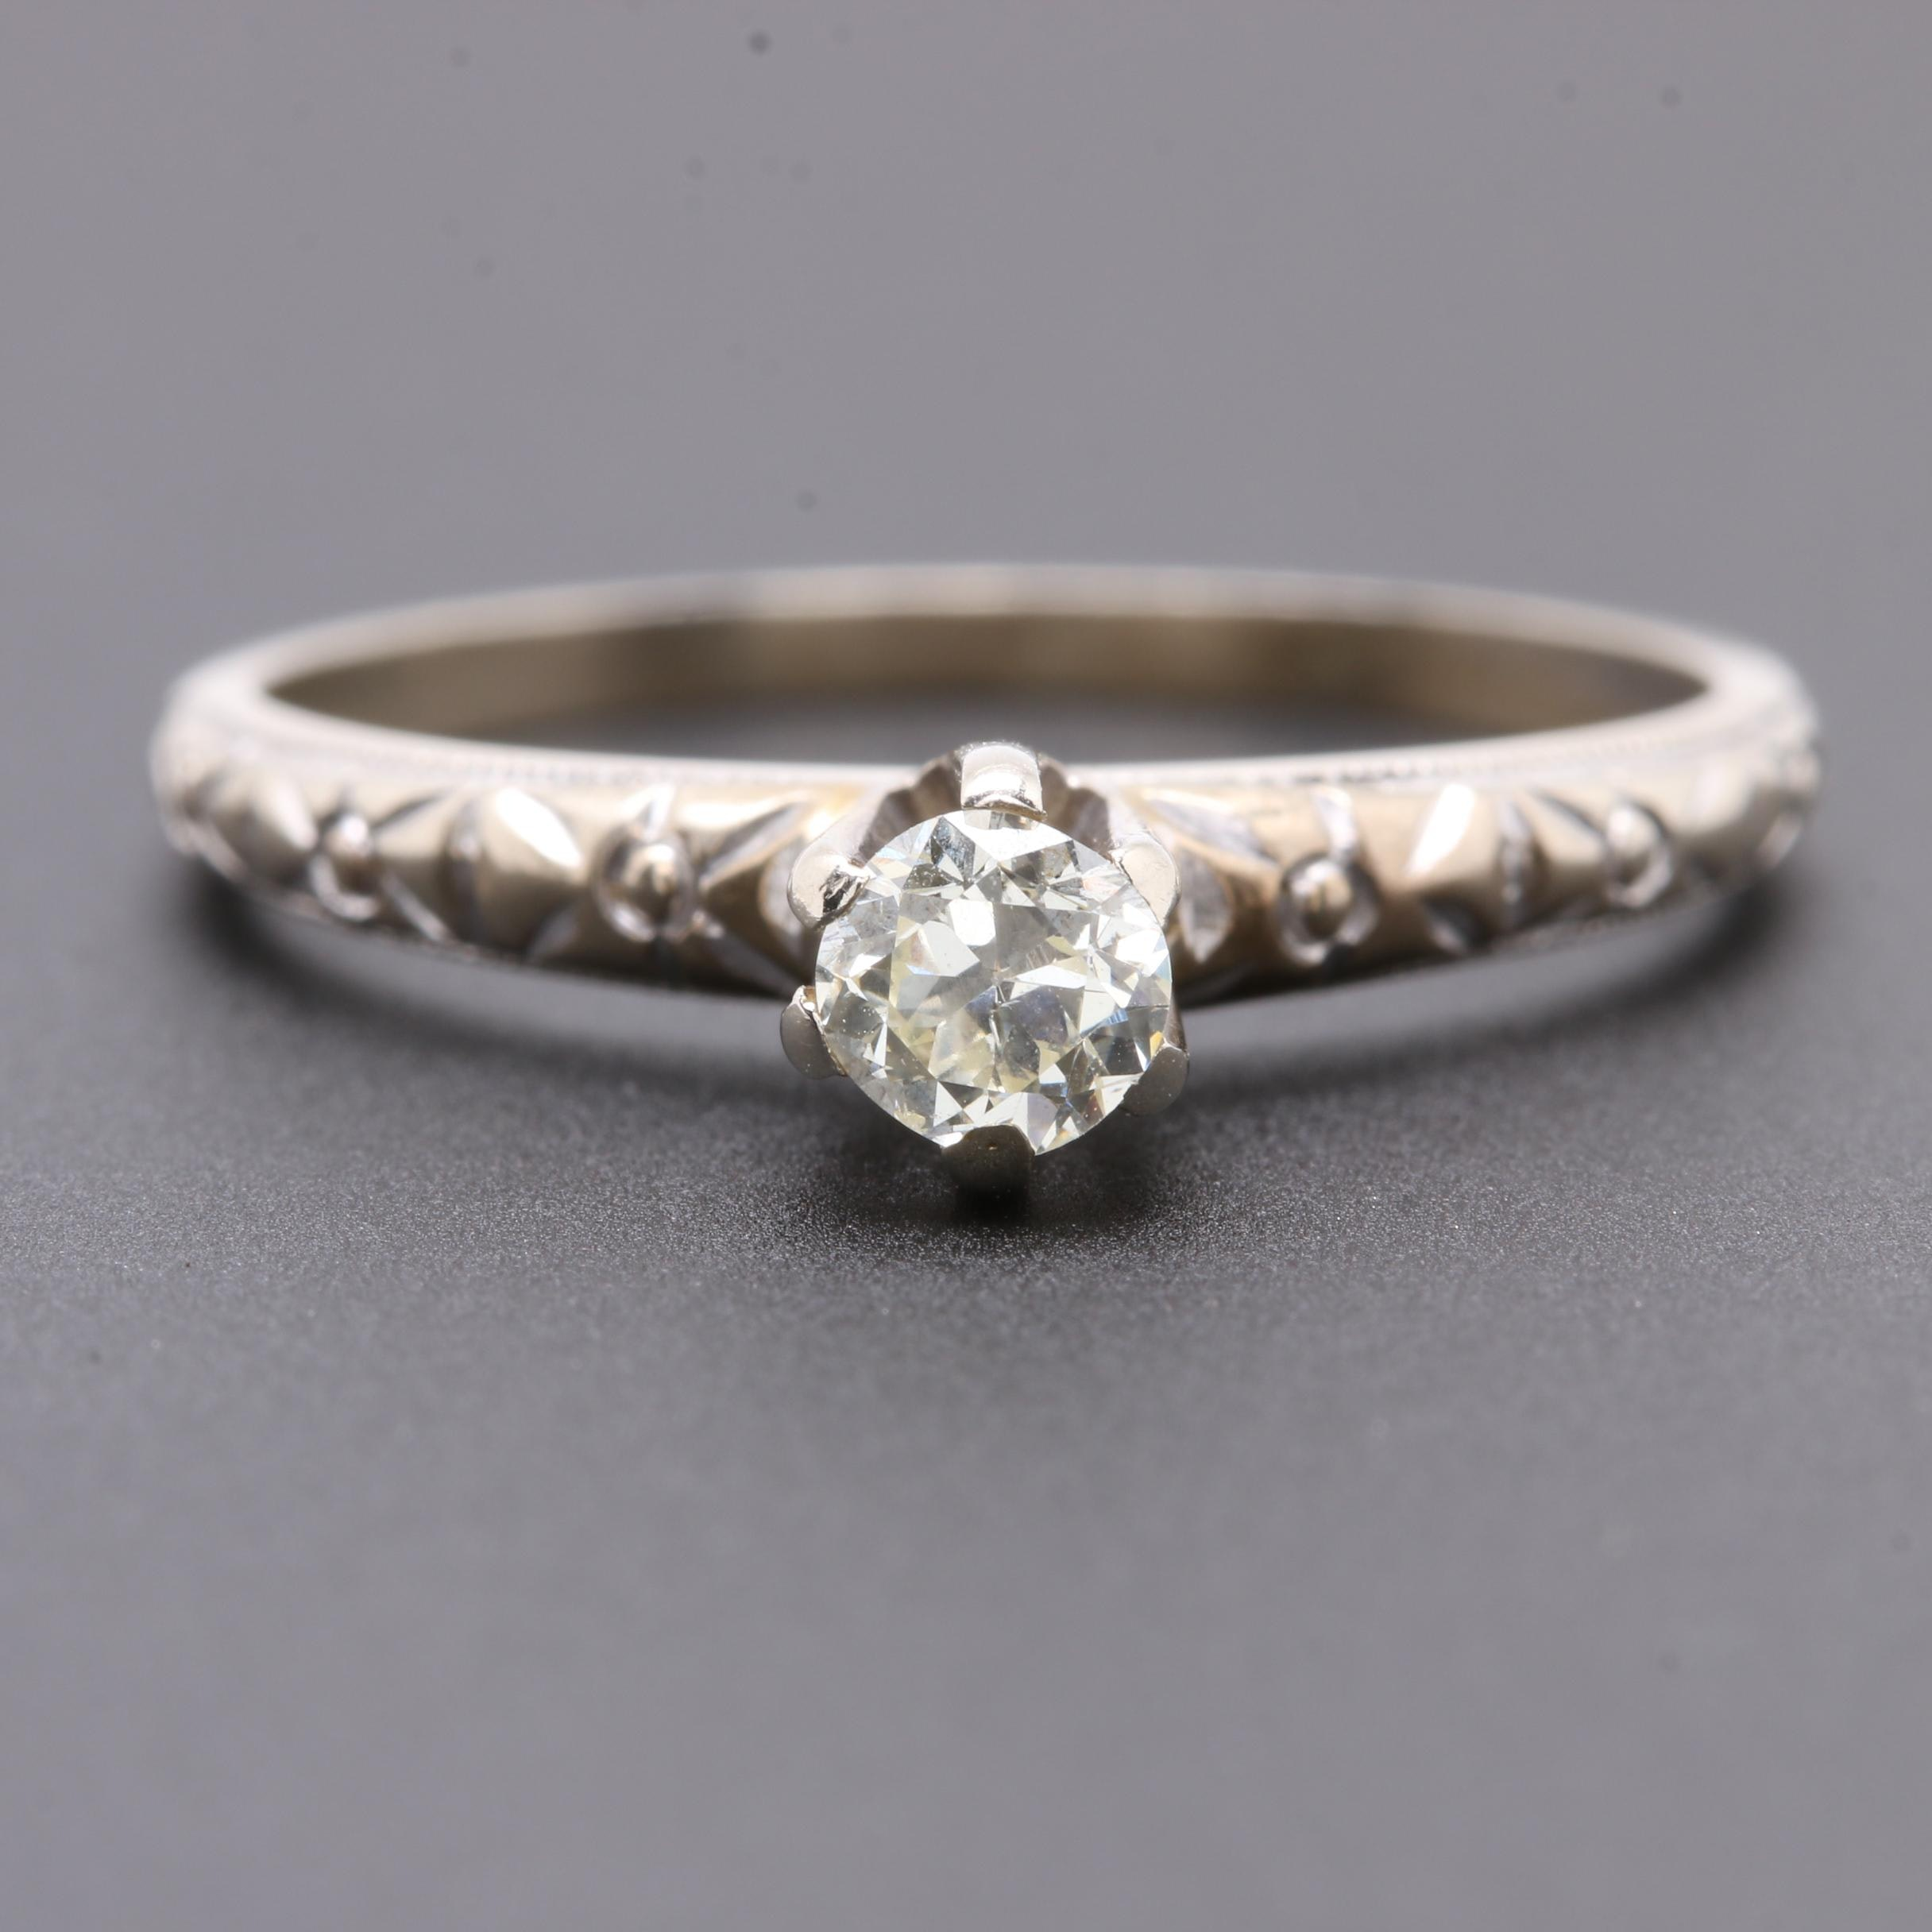 Circa 1920 - 1930s 14K White Gold Diamond Solitaire Ring